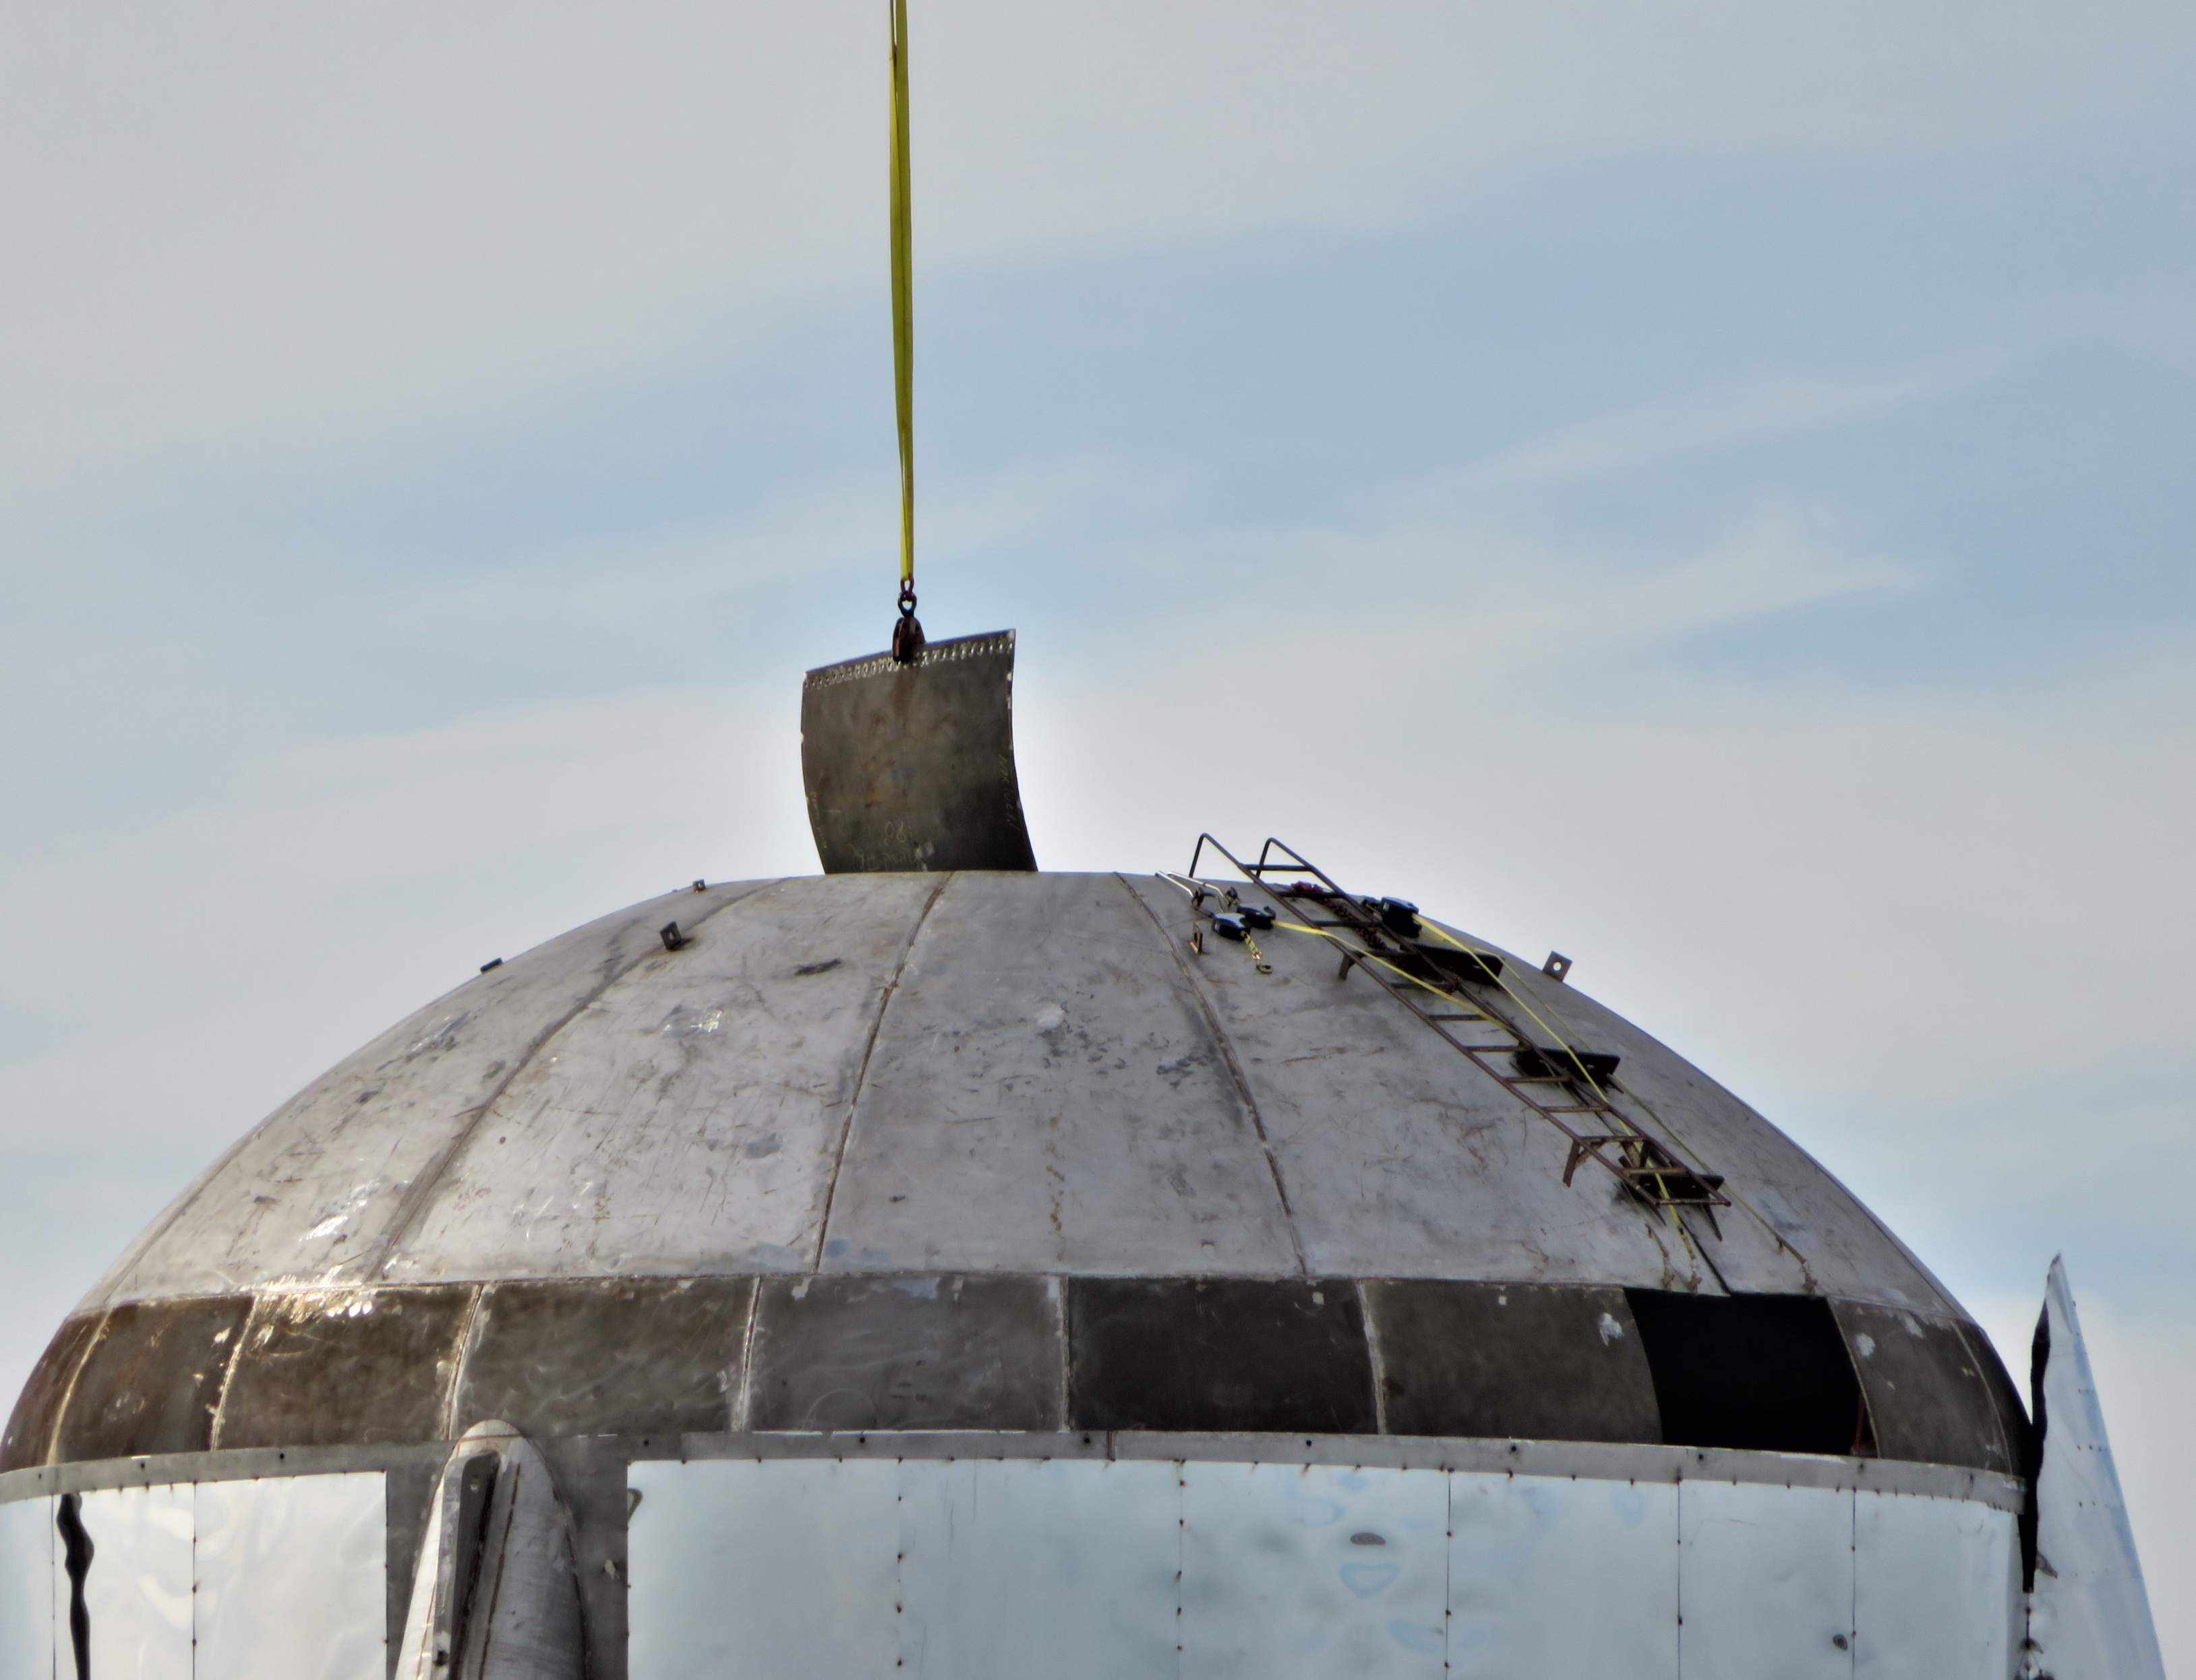 Boca Chica Starship dome work 012519 (NASASpaceflight – bocachicagal) 3 (c)